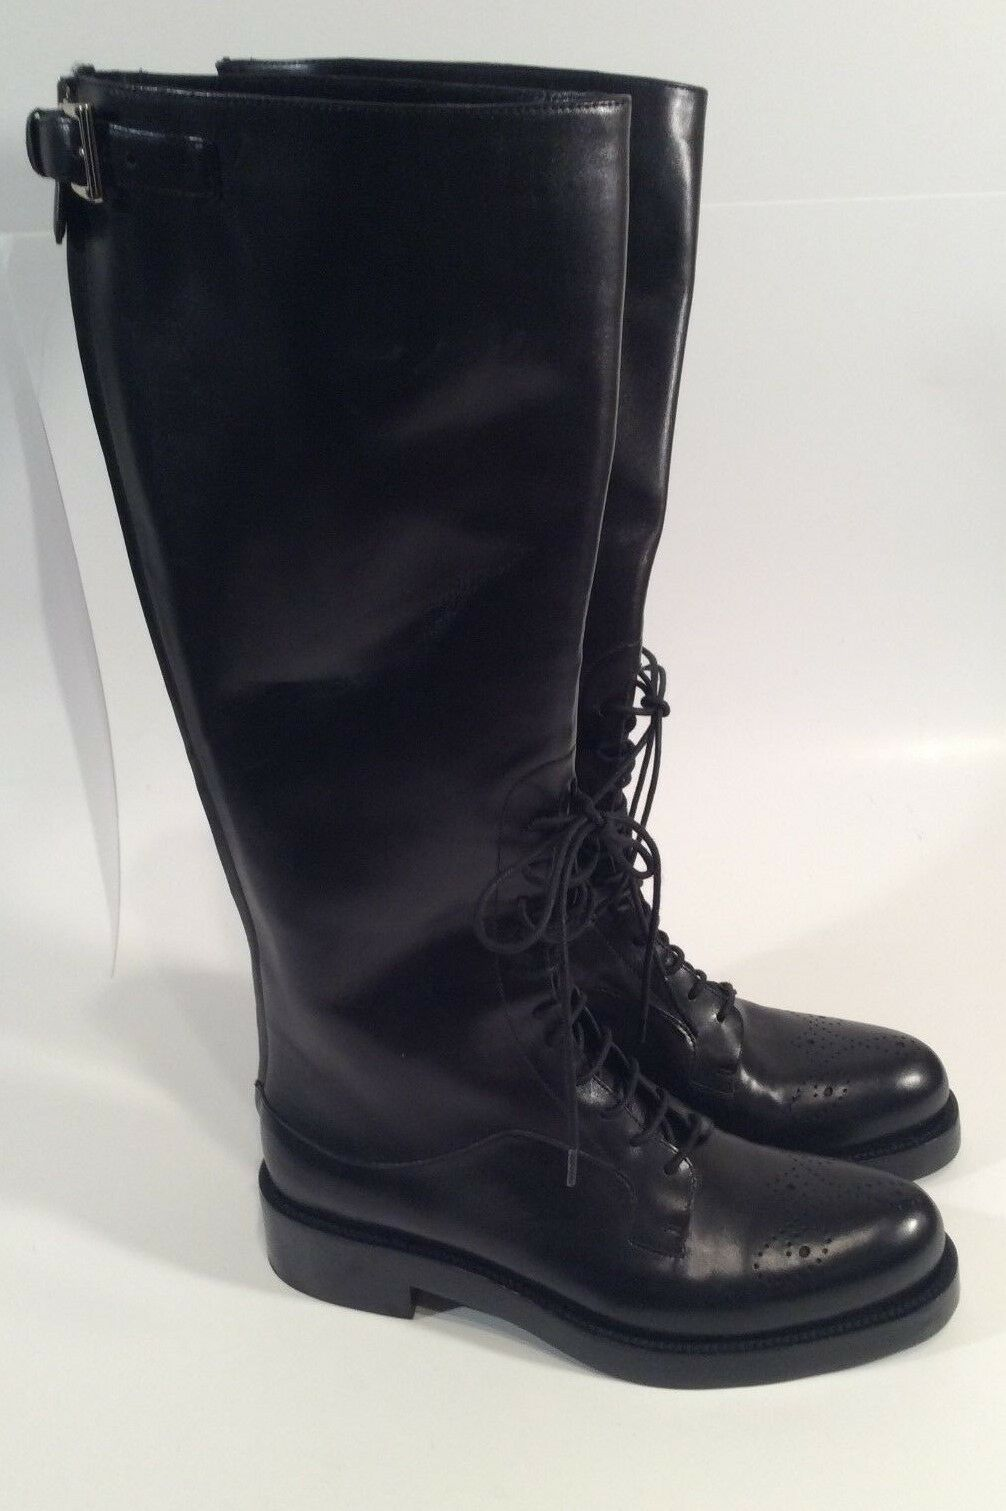 Prada Lace up knee length boots Black Size 36